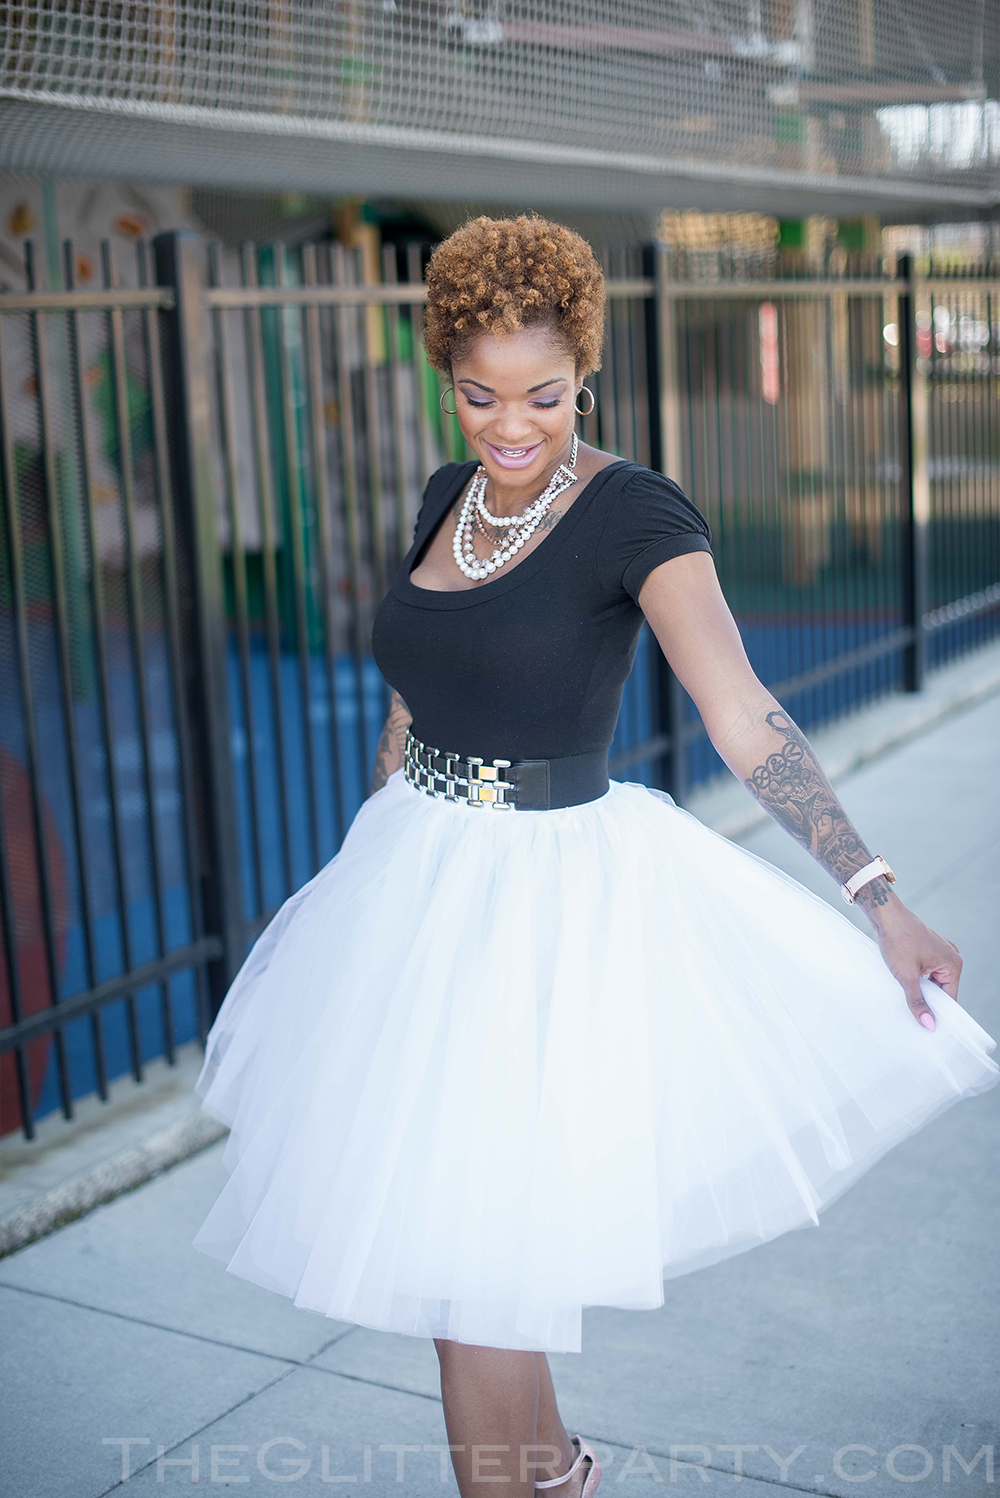 The Perfect Tulle Skirt – Family Picture Time!